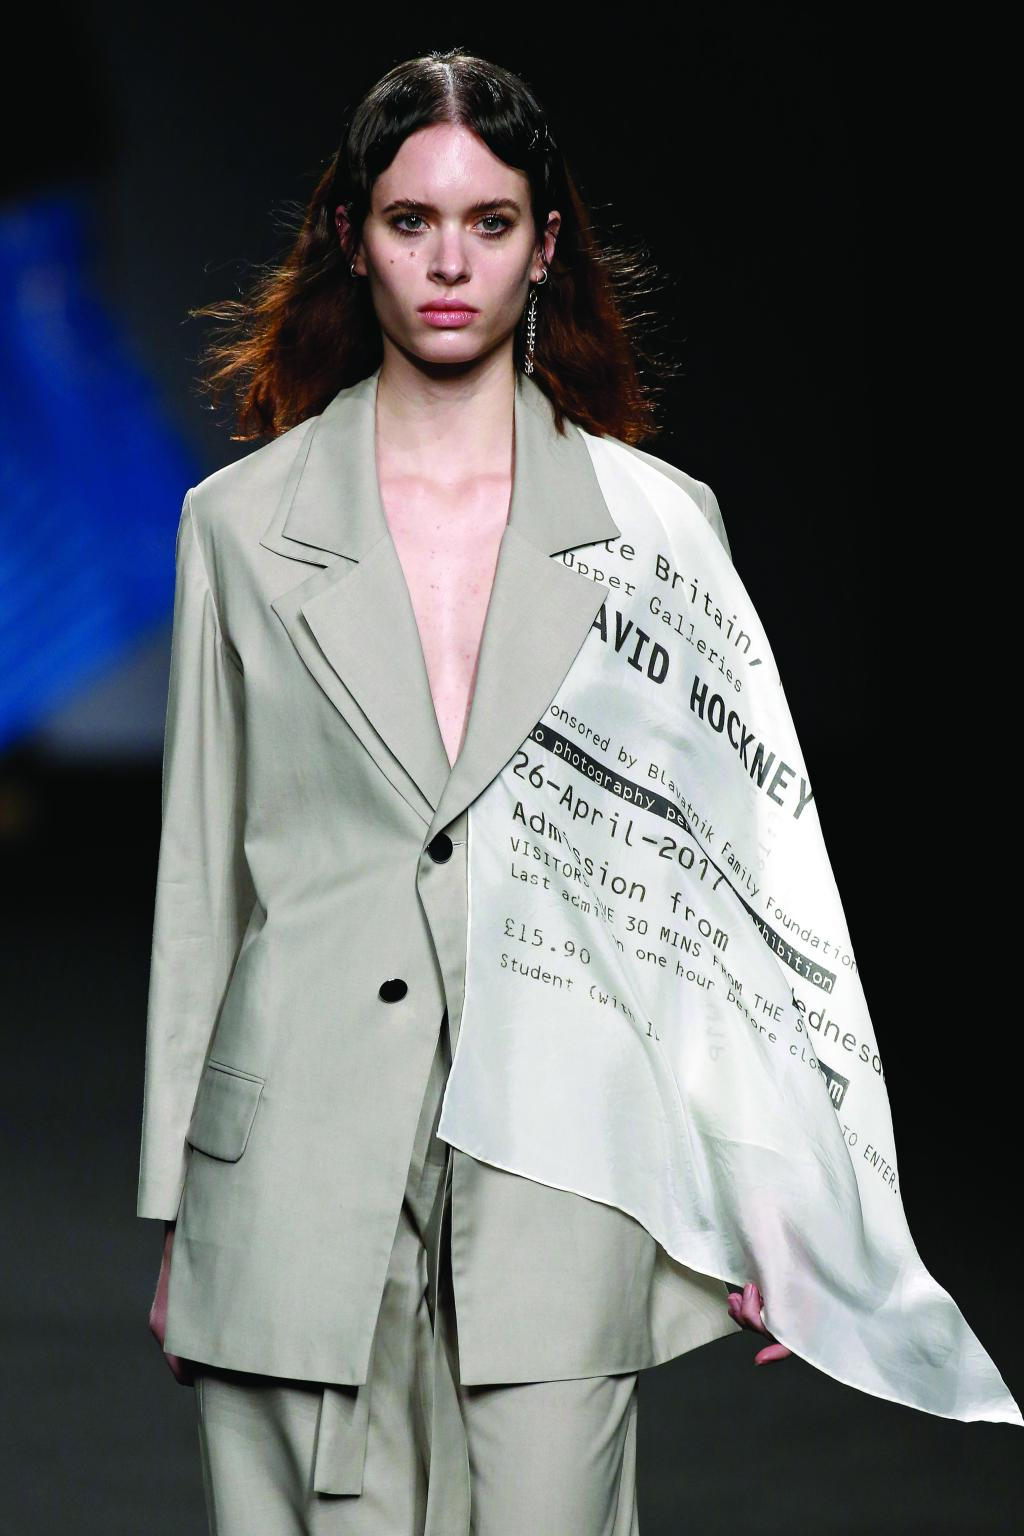 Samsung Ego The New Generation Of Young Designers At Mbfw Madrid Aw19 33 Magazine